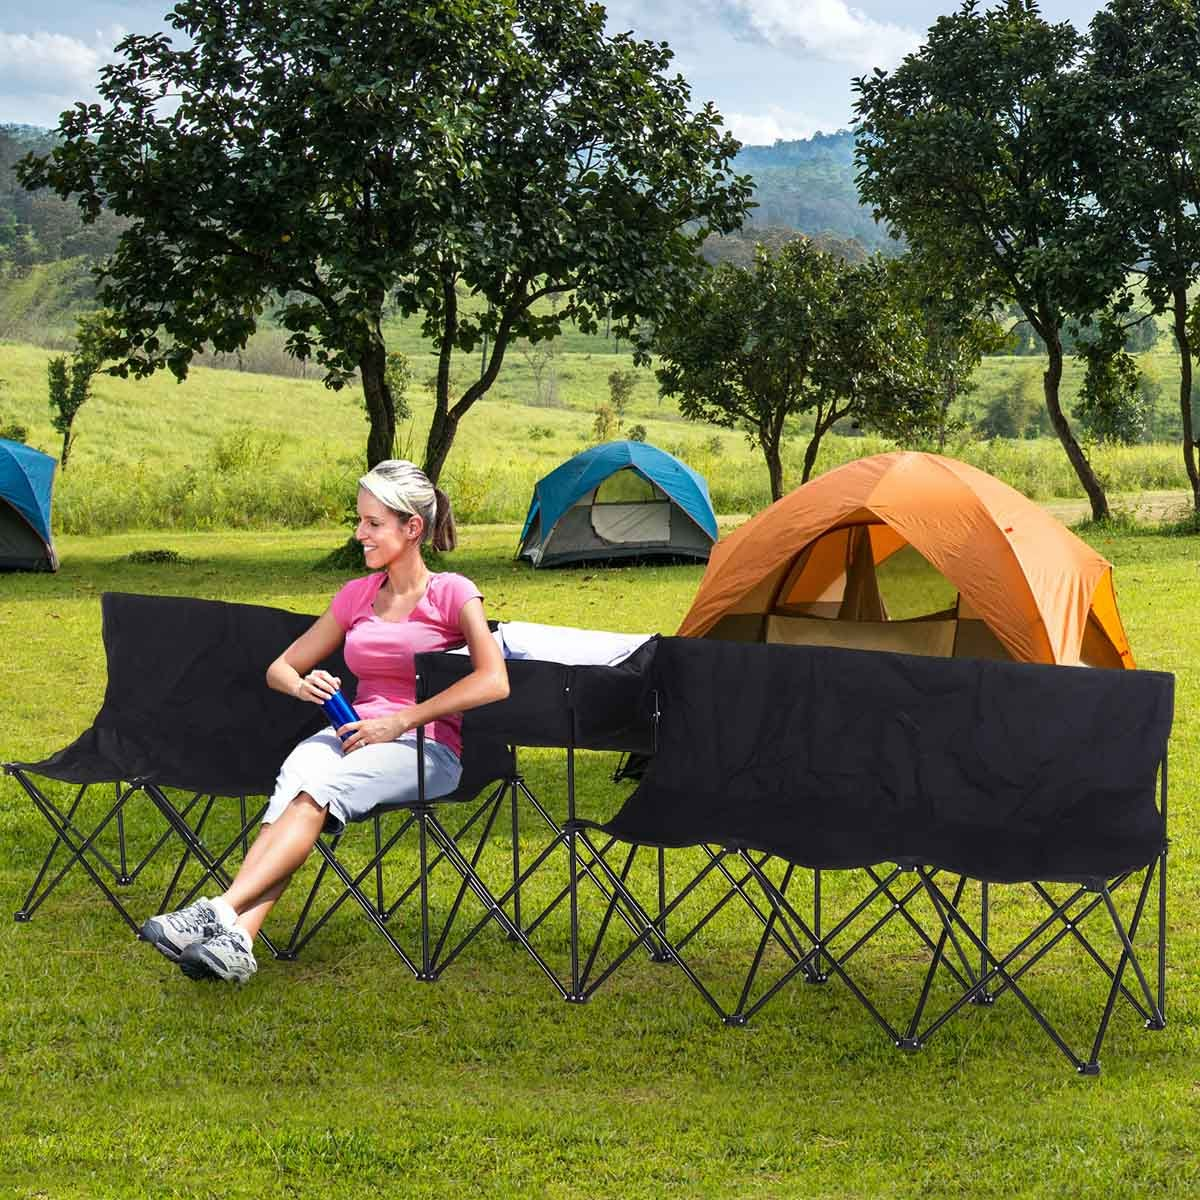 Outsunny 6 Seater Portable Bench System with Cool Bag - Black